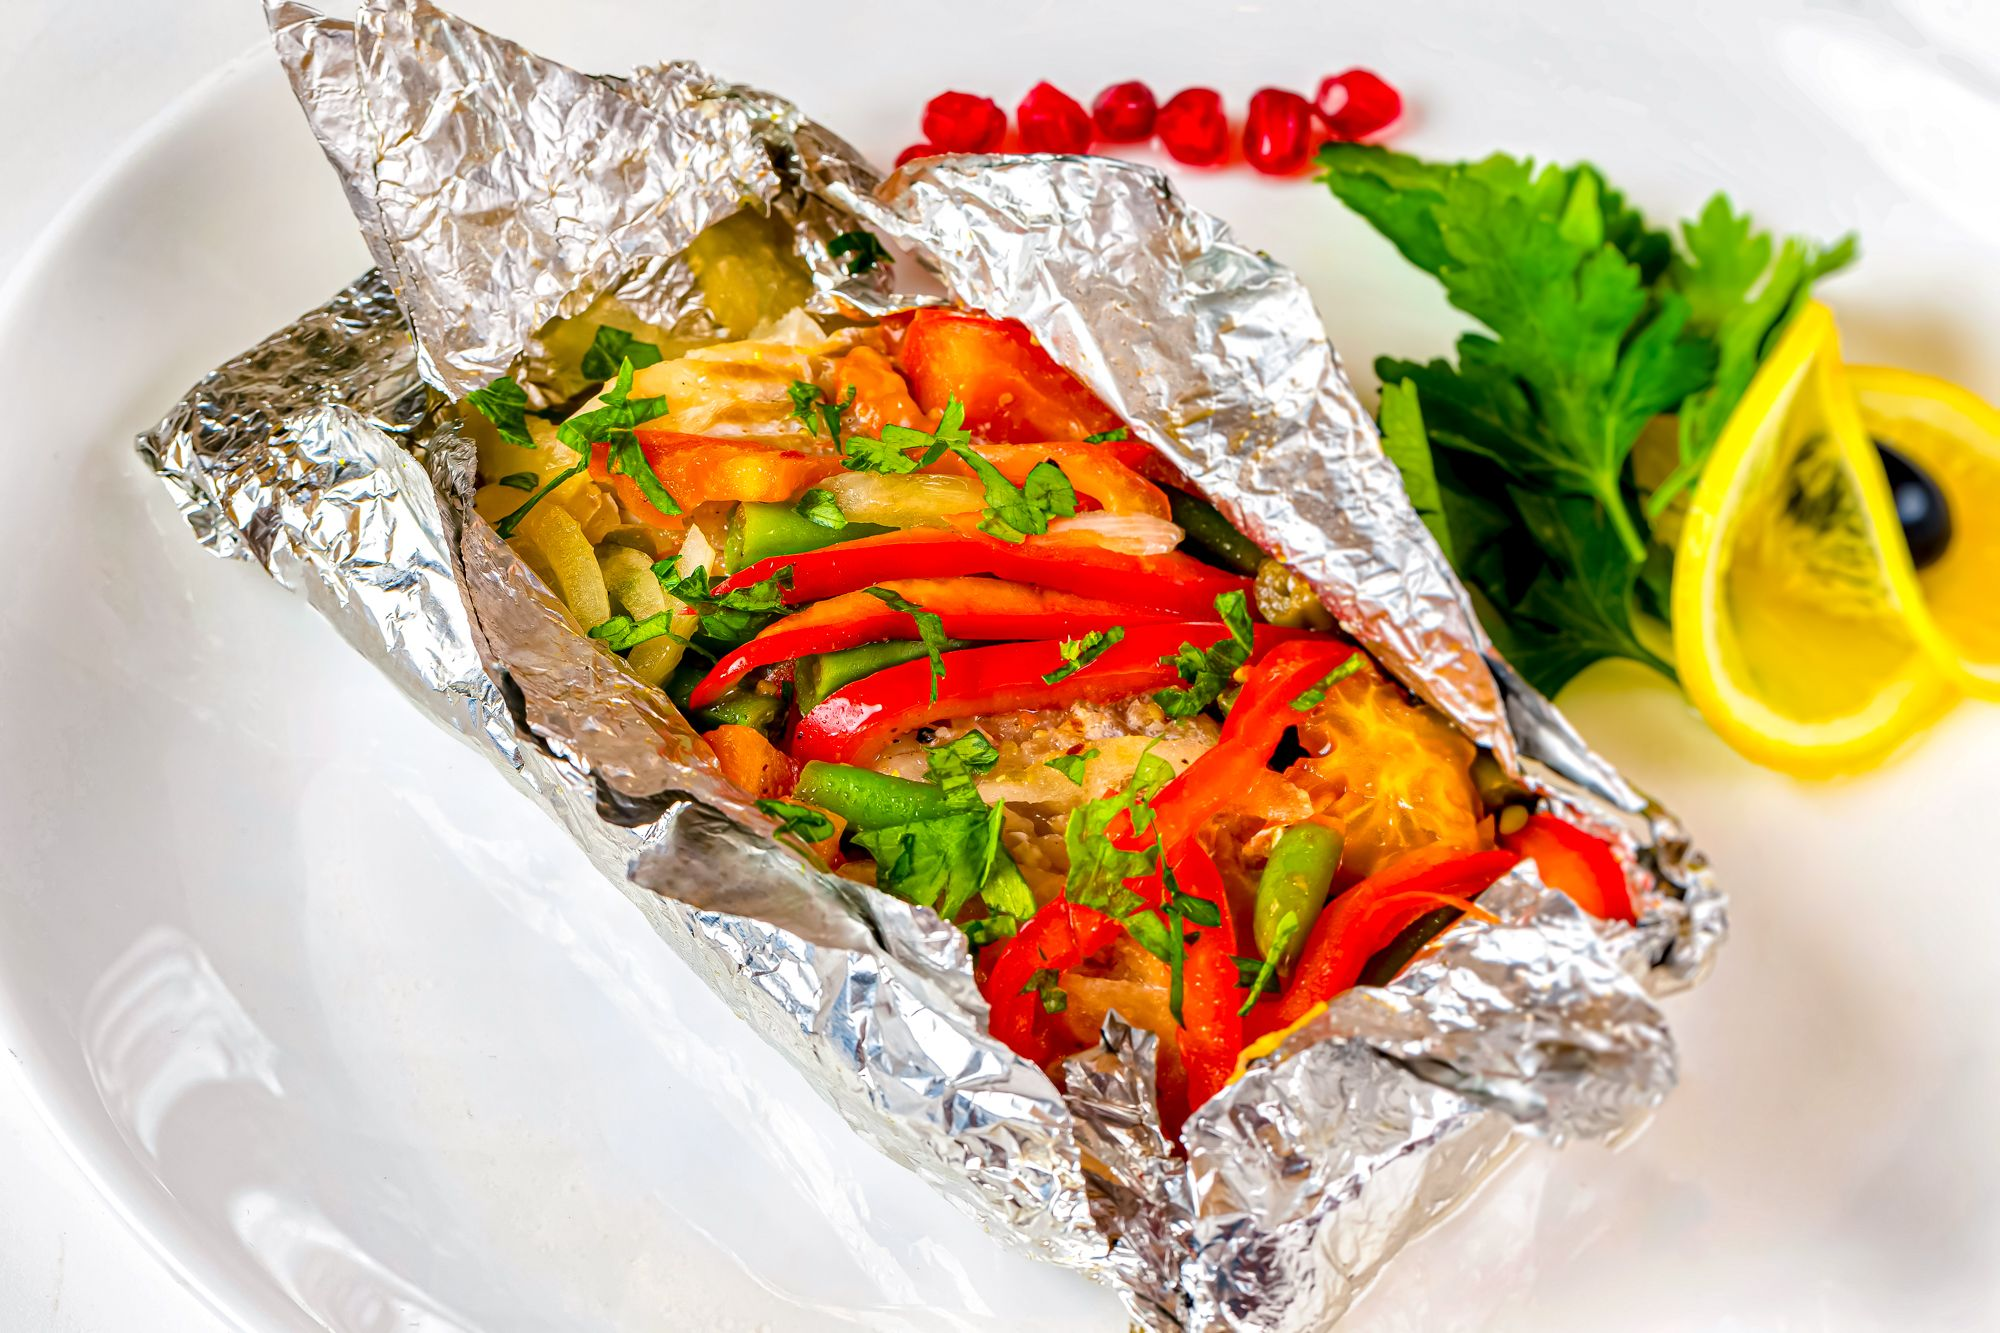 Sandals Negril's Secret Fish In Foil Recipe